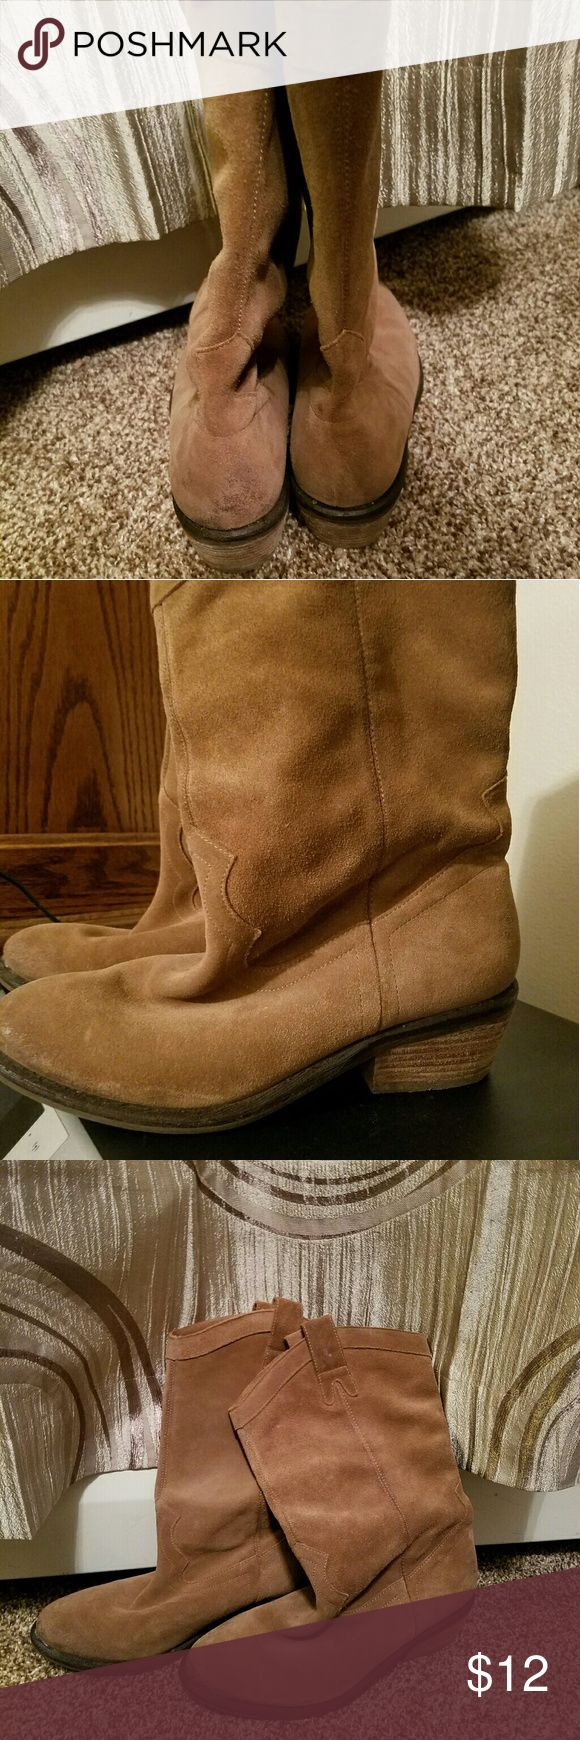 Size 61/2 Jessica Simpson suede slouch boots Beautuful tan colored suede slouch boots.   In great condition.   Just trying to clear out closet now.  My Loss.   You gain;) Jessica Simpson Shoes Heeled Boots